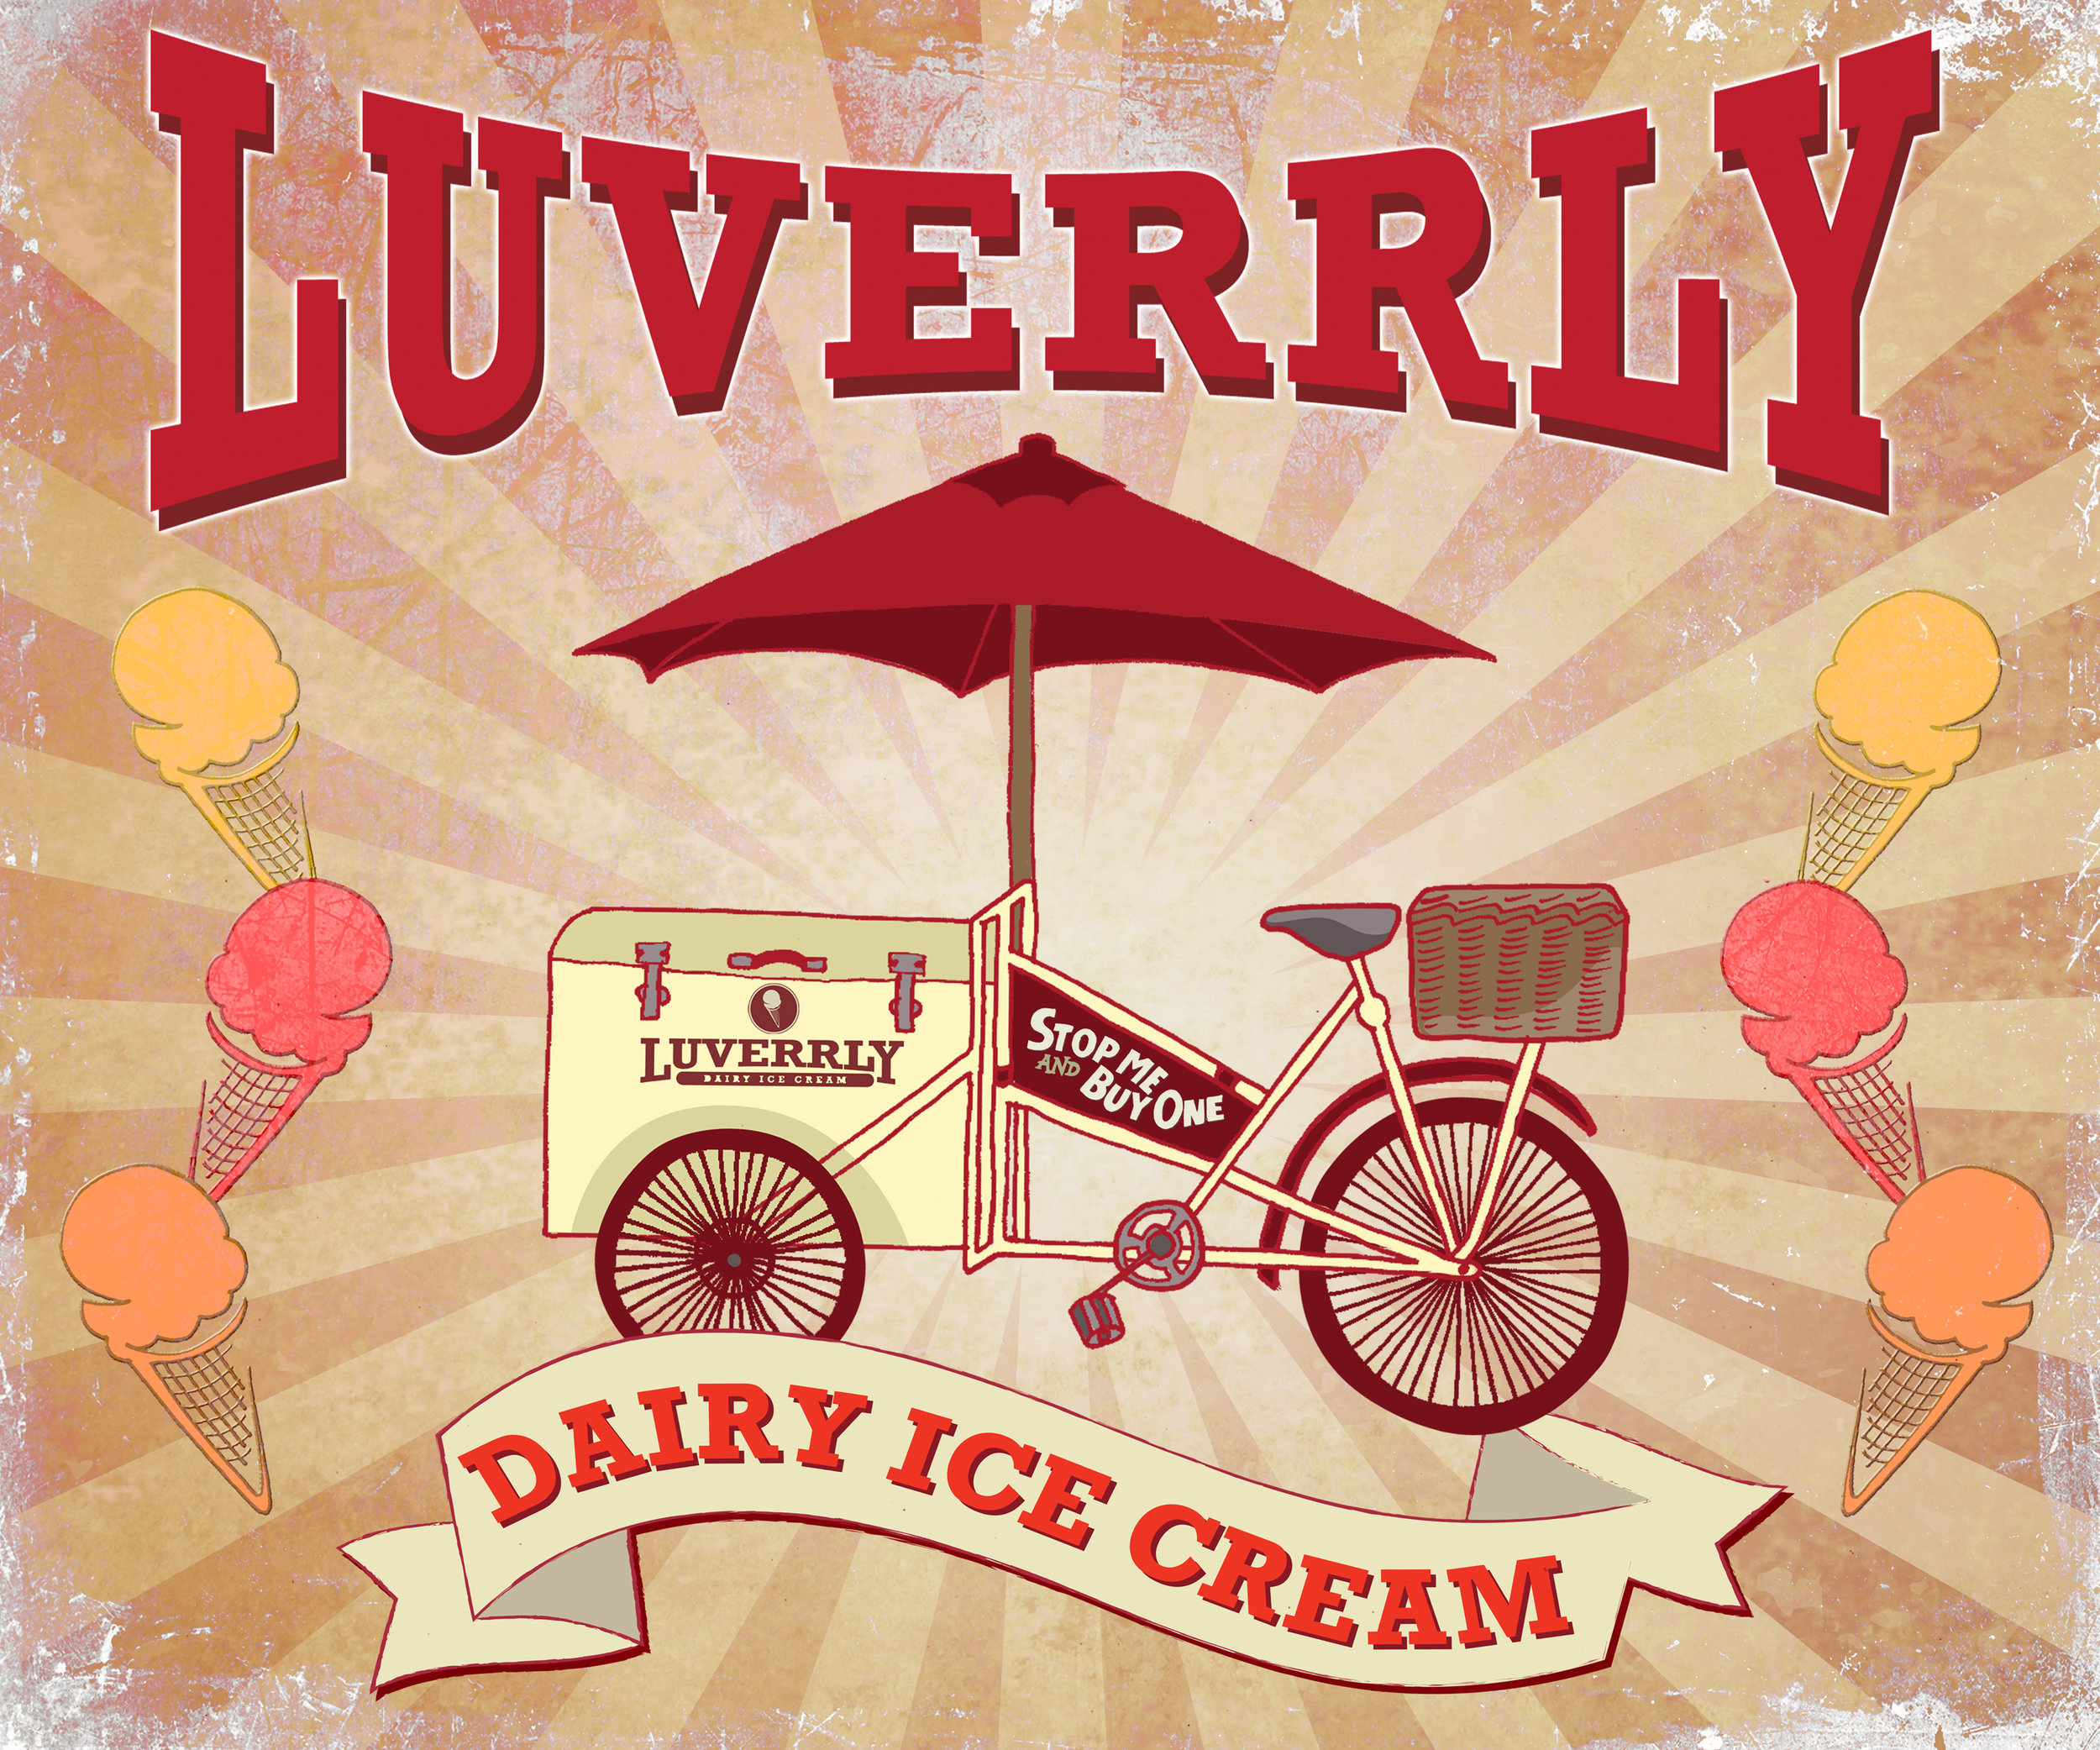 Luvverly Icecream sign final-sm.jpg